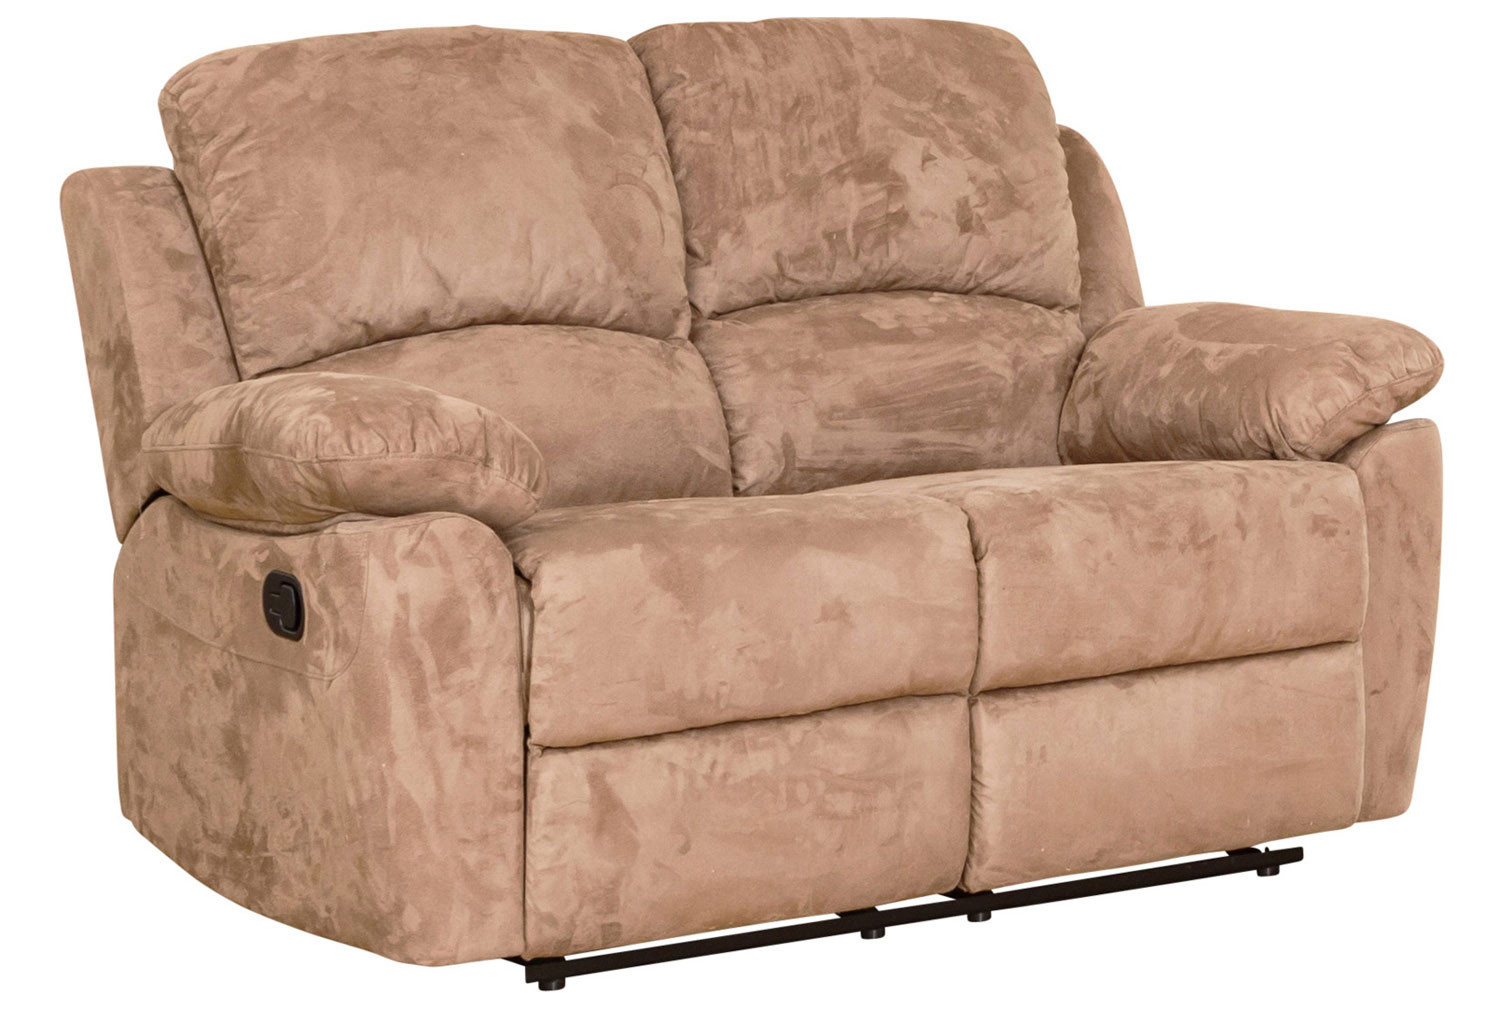 Bowery Recliner 2 Seater Sofa Furniture At Work 174